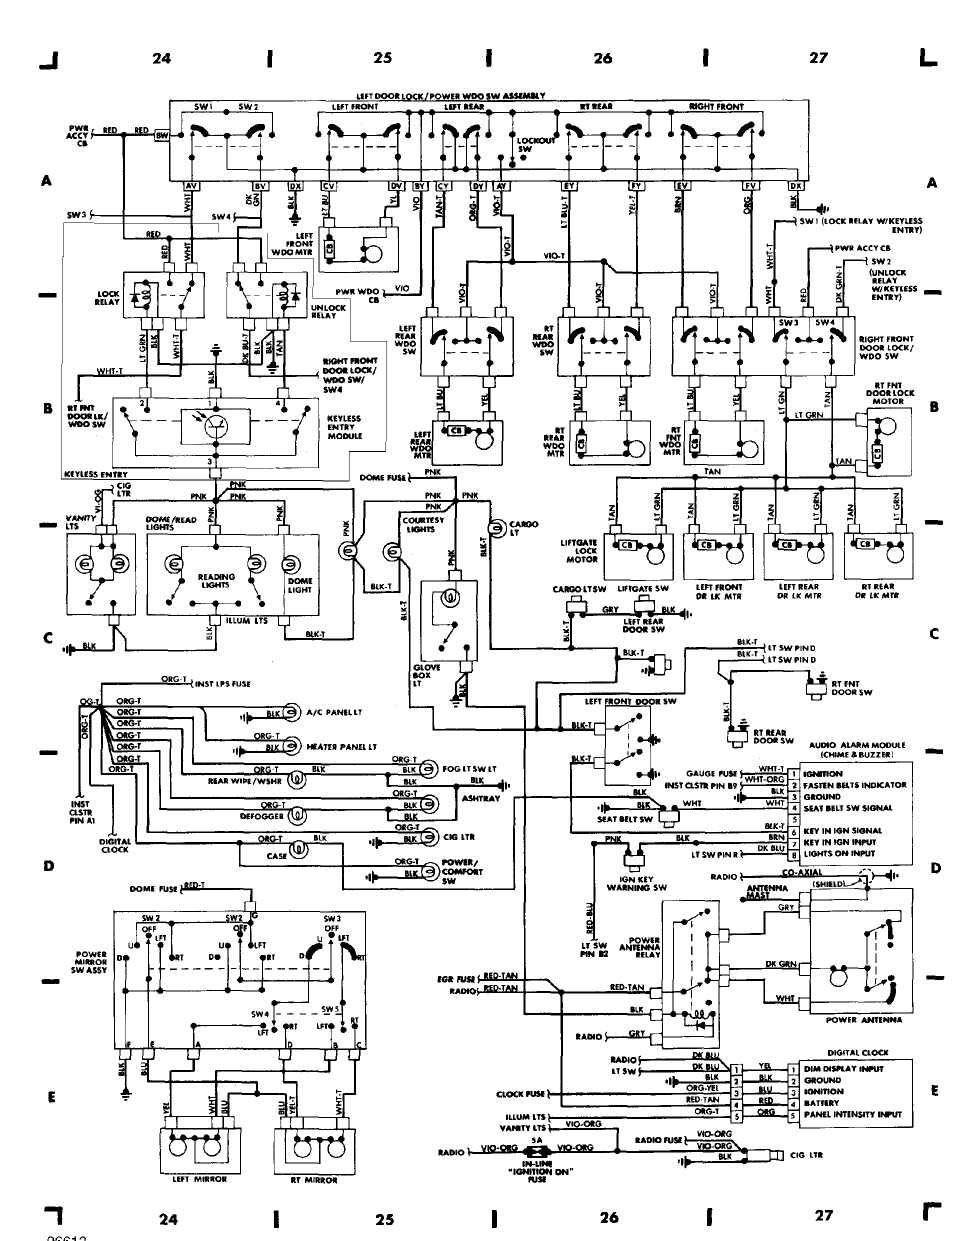 wiring_diagrams_html_61f5e0ad wiring diagrams 1984 1991 jeep cherokee (xj) jeep 1995 Jeep Cherokee Parts Diagram at honlapkeszites.co